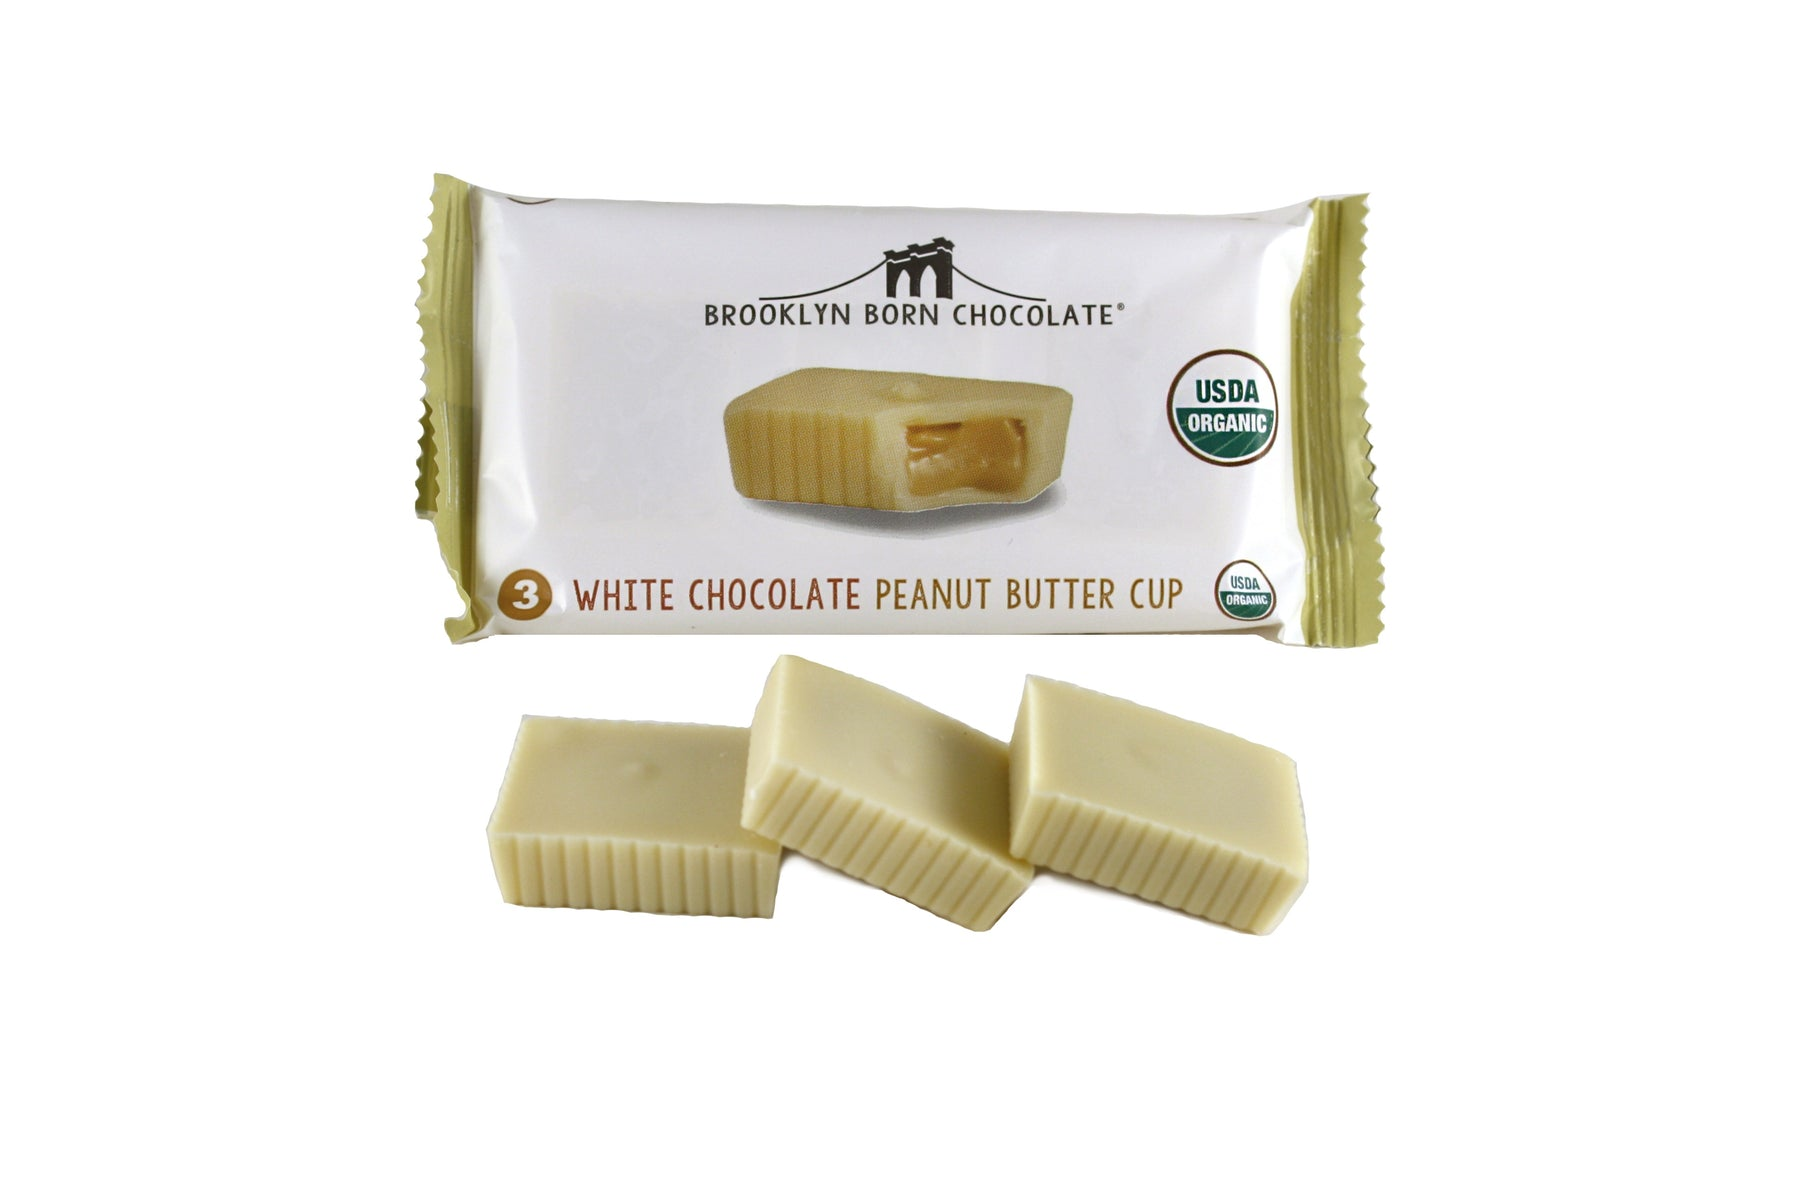 Buy Brooklyn Born Chocolate White Chocolate Peanut Butter Cups - Package of 3 at Pure Feast